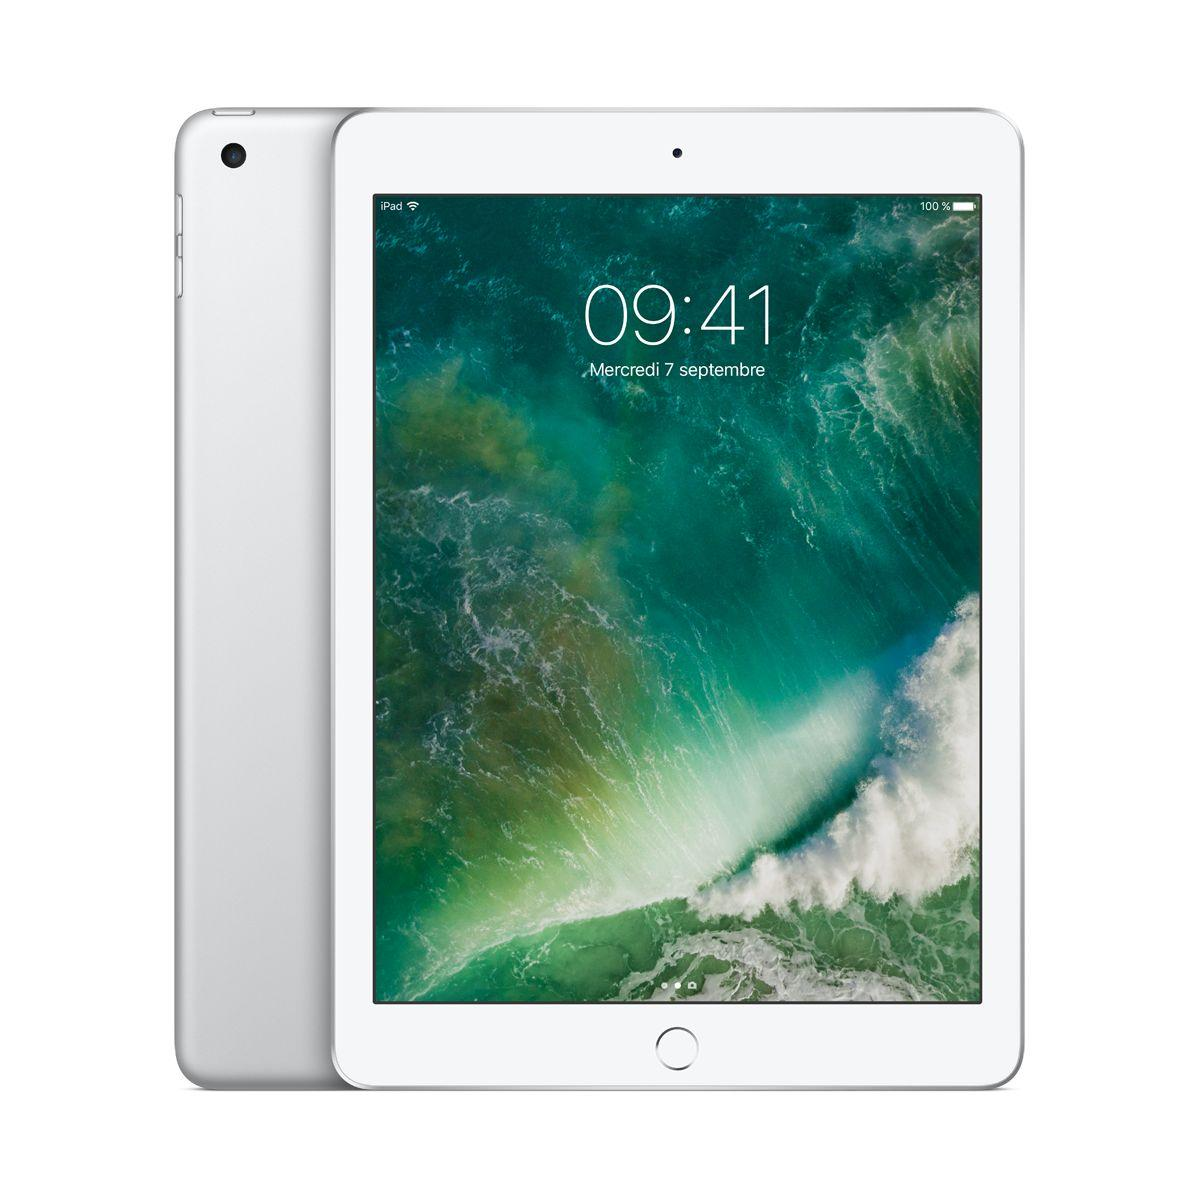 Tablette ipad new ipad 128go argent (photo)